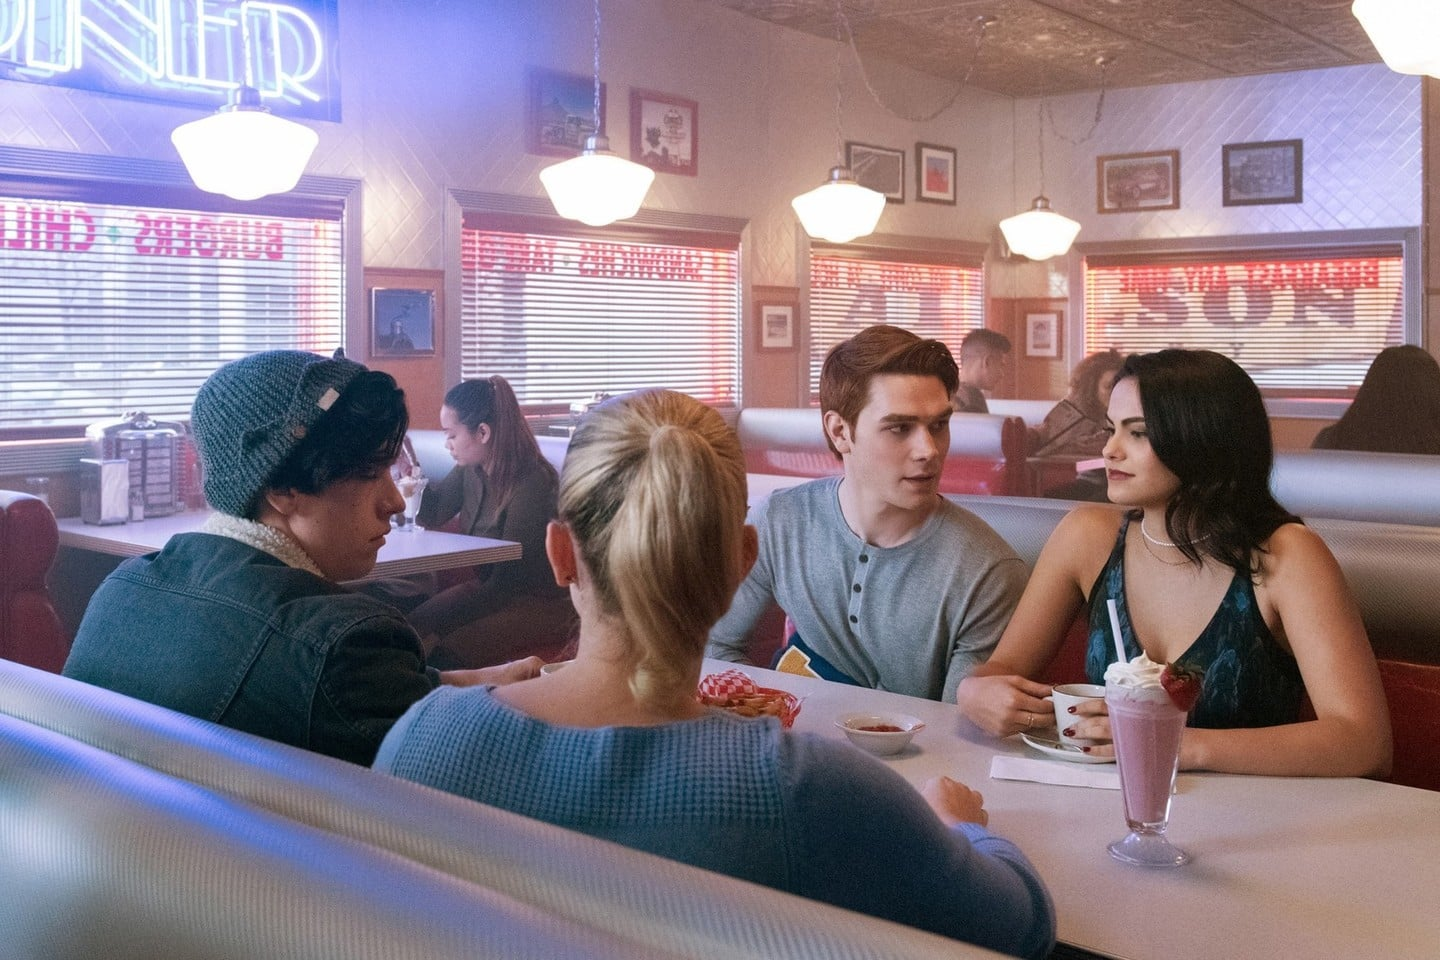 The CW Network Riverdale